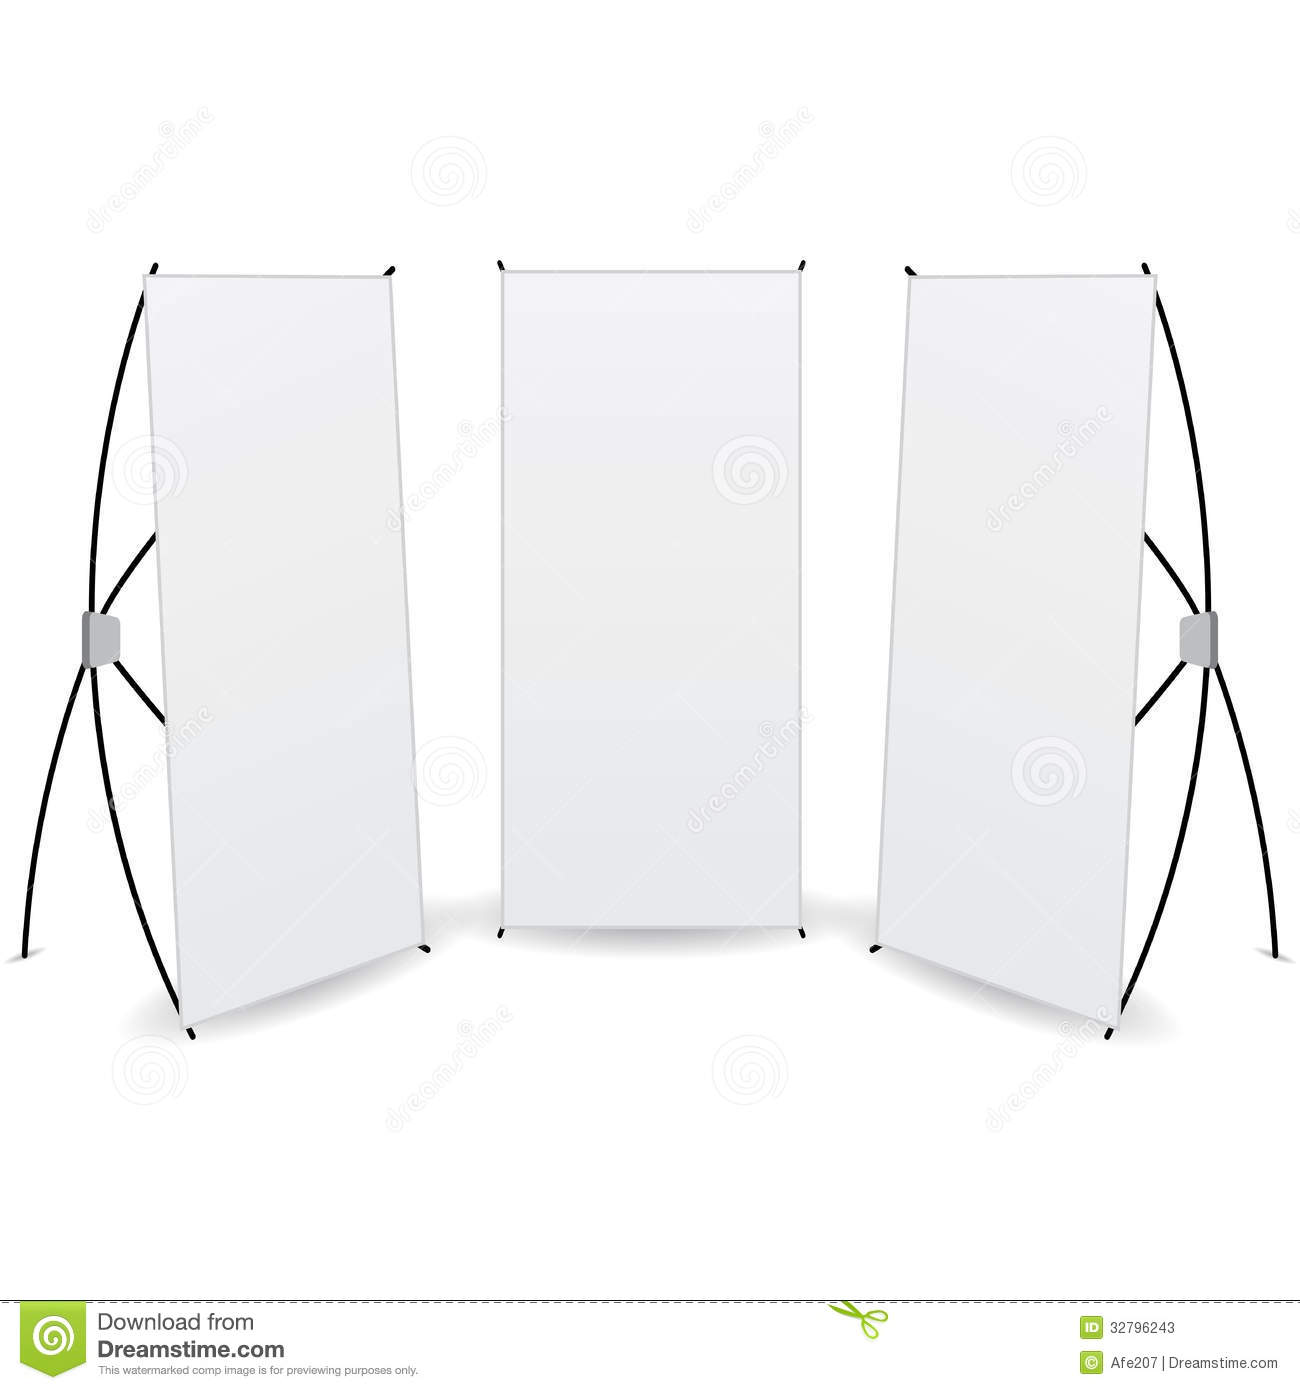 Store Banne 6 X 3.5 M Vector Pack Banner X Stands Display Stock Photos Image